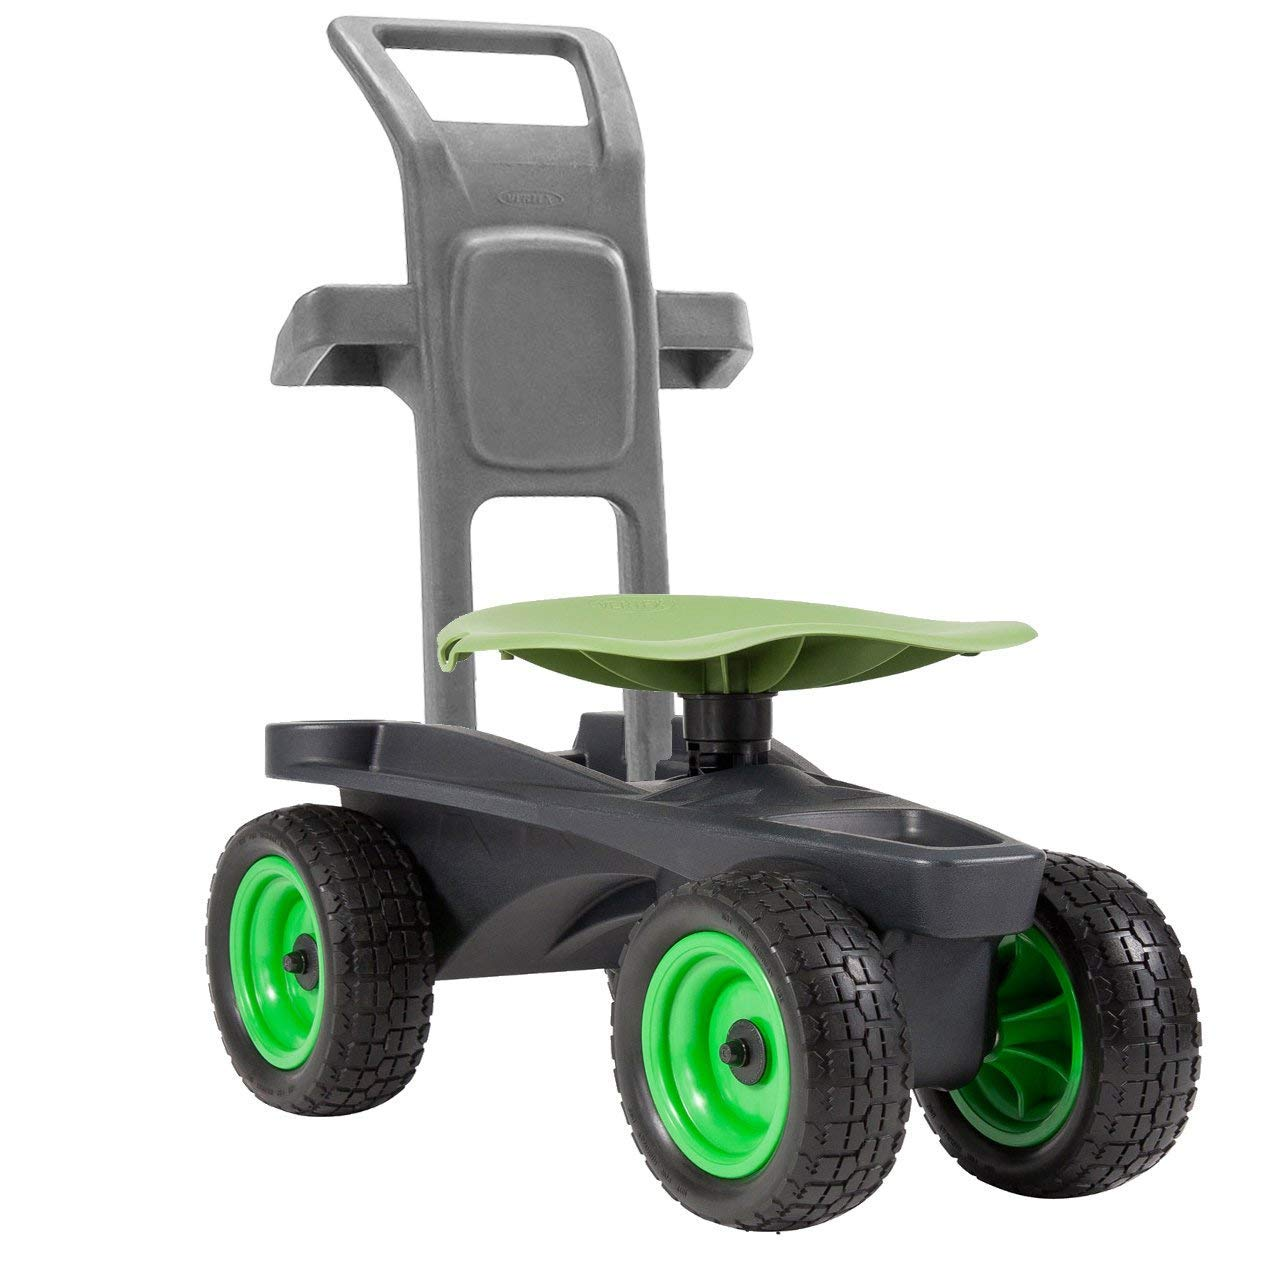 Easy Up Deluxe XTV Rolling Garden Seat and Scoot - Adjustable Swivel Seat, Heavy Duty Wheels, and Ergonomic Design to Assist Standing, Sitting, and Bending Over Made in The USA (Deluxe XTV Black)